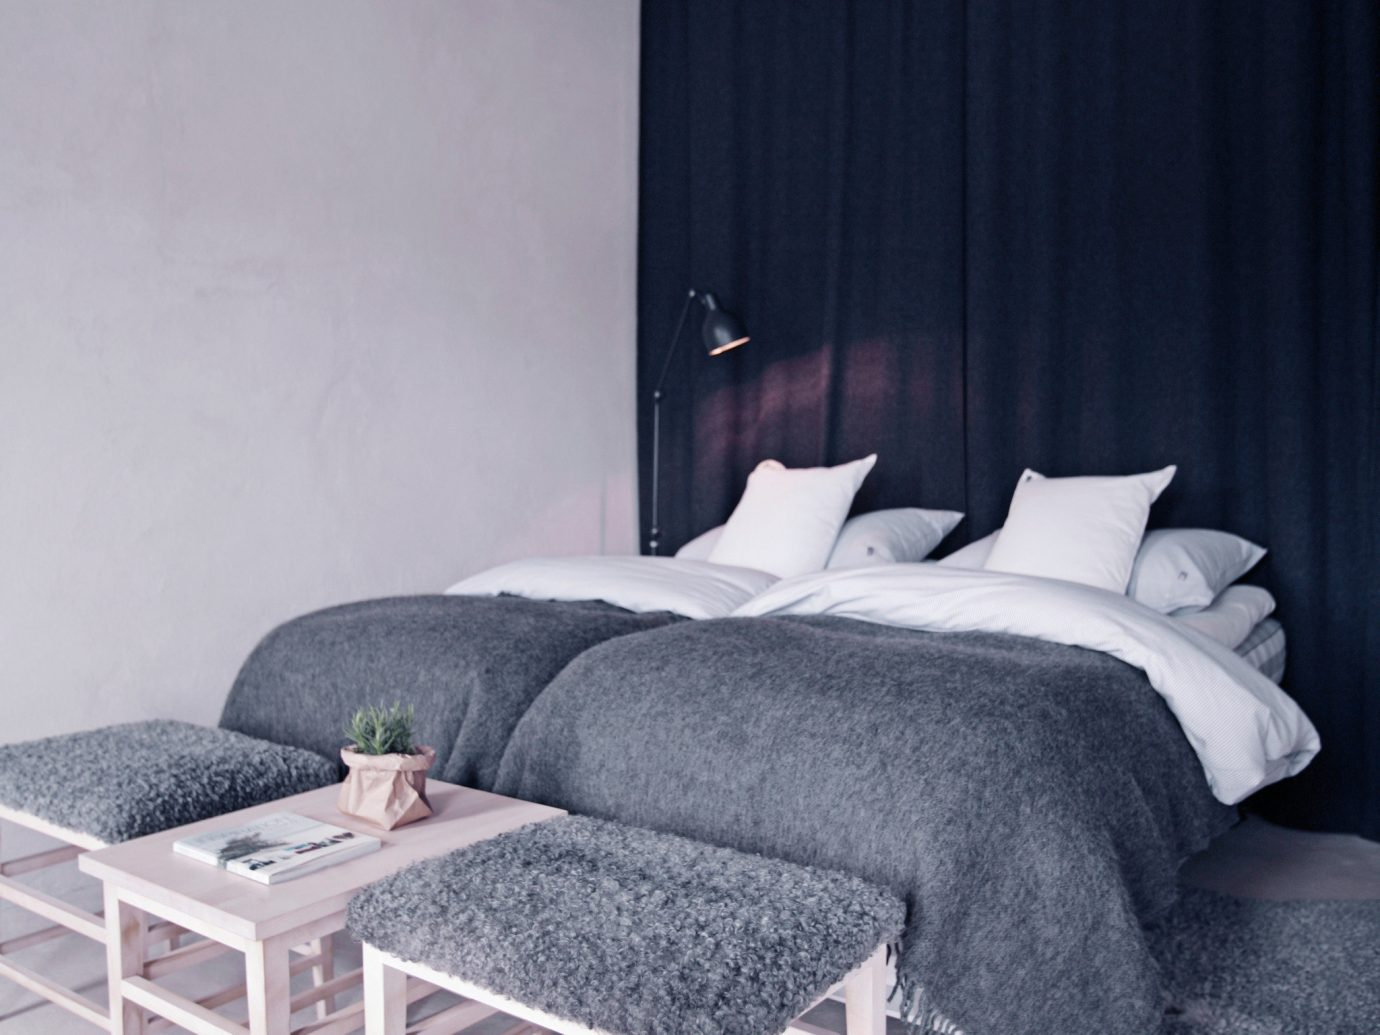 Design Hotels indoor wall room floor bed frame Bedroom furniture bed interior design home curtain house window Suite wood mattress daylighting ceiling couch window covering window treatment table comfort bed sheet apartment